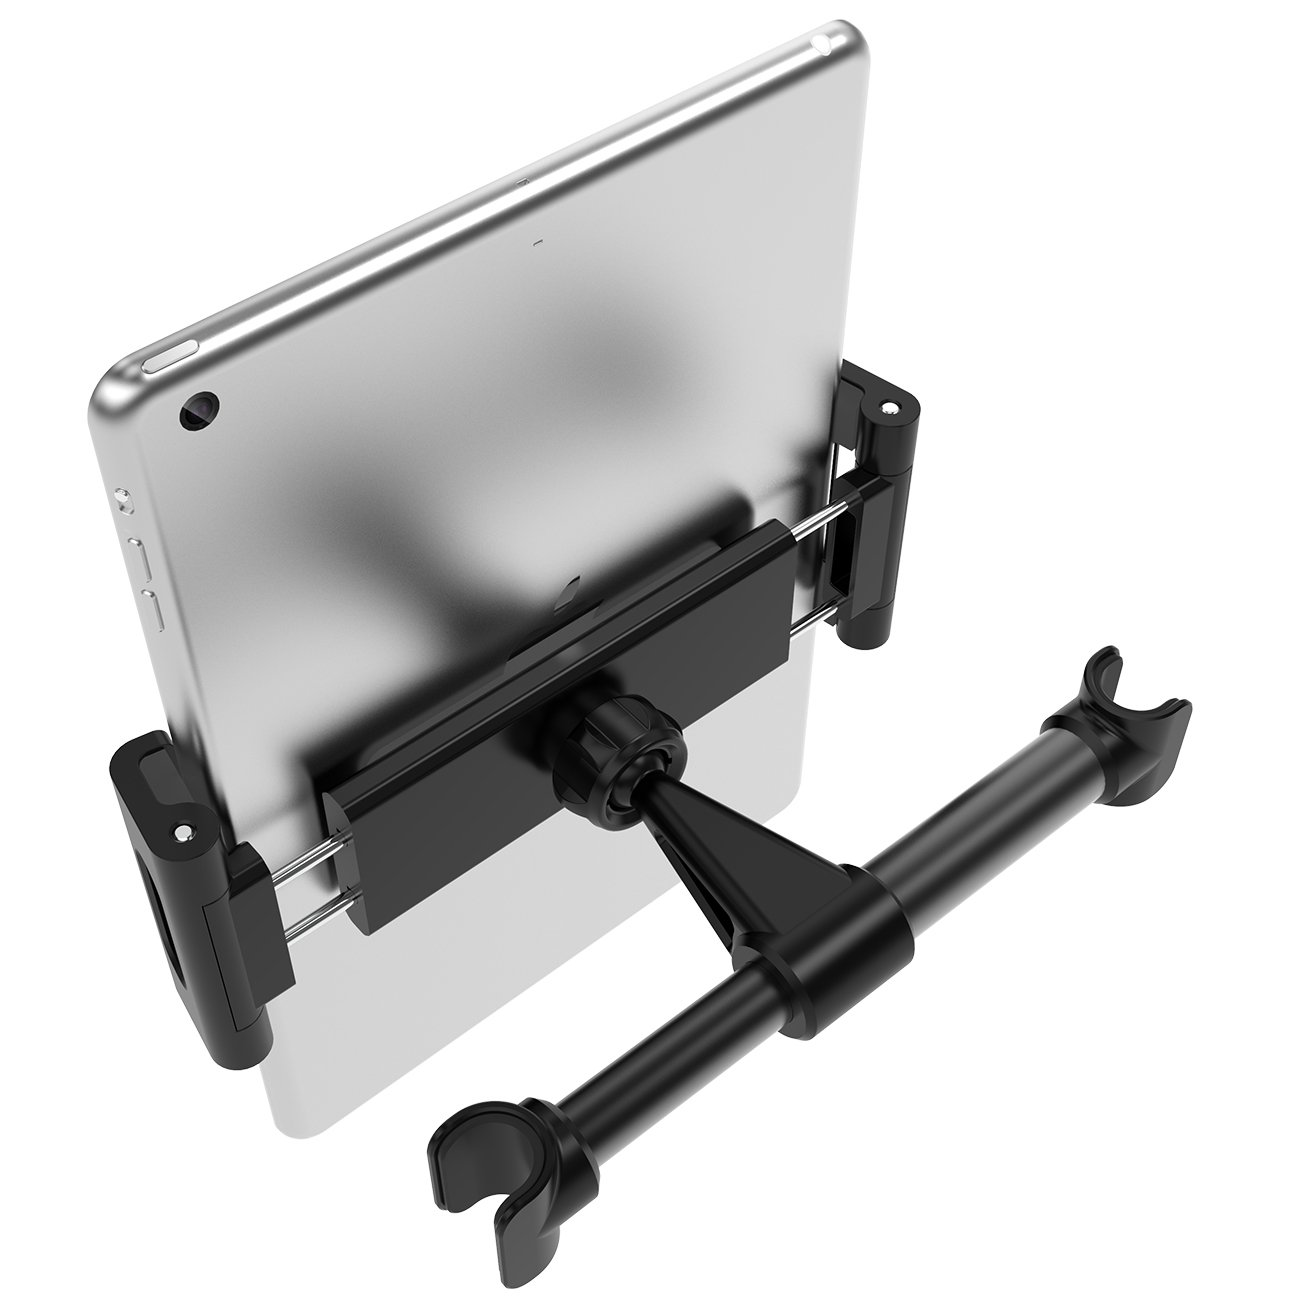 Car Tablet Headrest Mount, Lamicall Tablet Holder : Back seat Stand Cradle Compatible with 4.7~13 inch Like iPad 2017 Pro 9.7, 10.5, 12.9, Air Mini 2 3 4, Accessories, E-Reader, Smartphones - Black by Lamicall (Image #2)